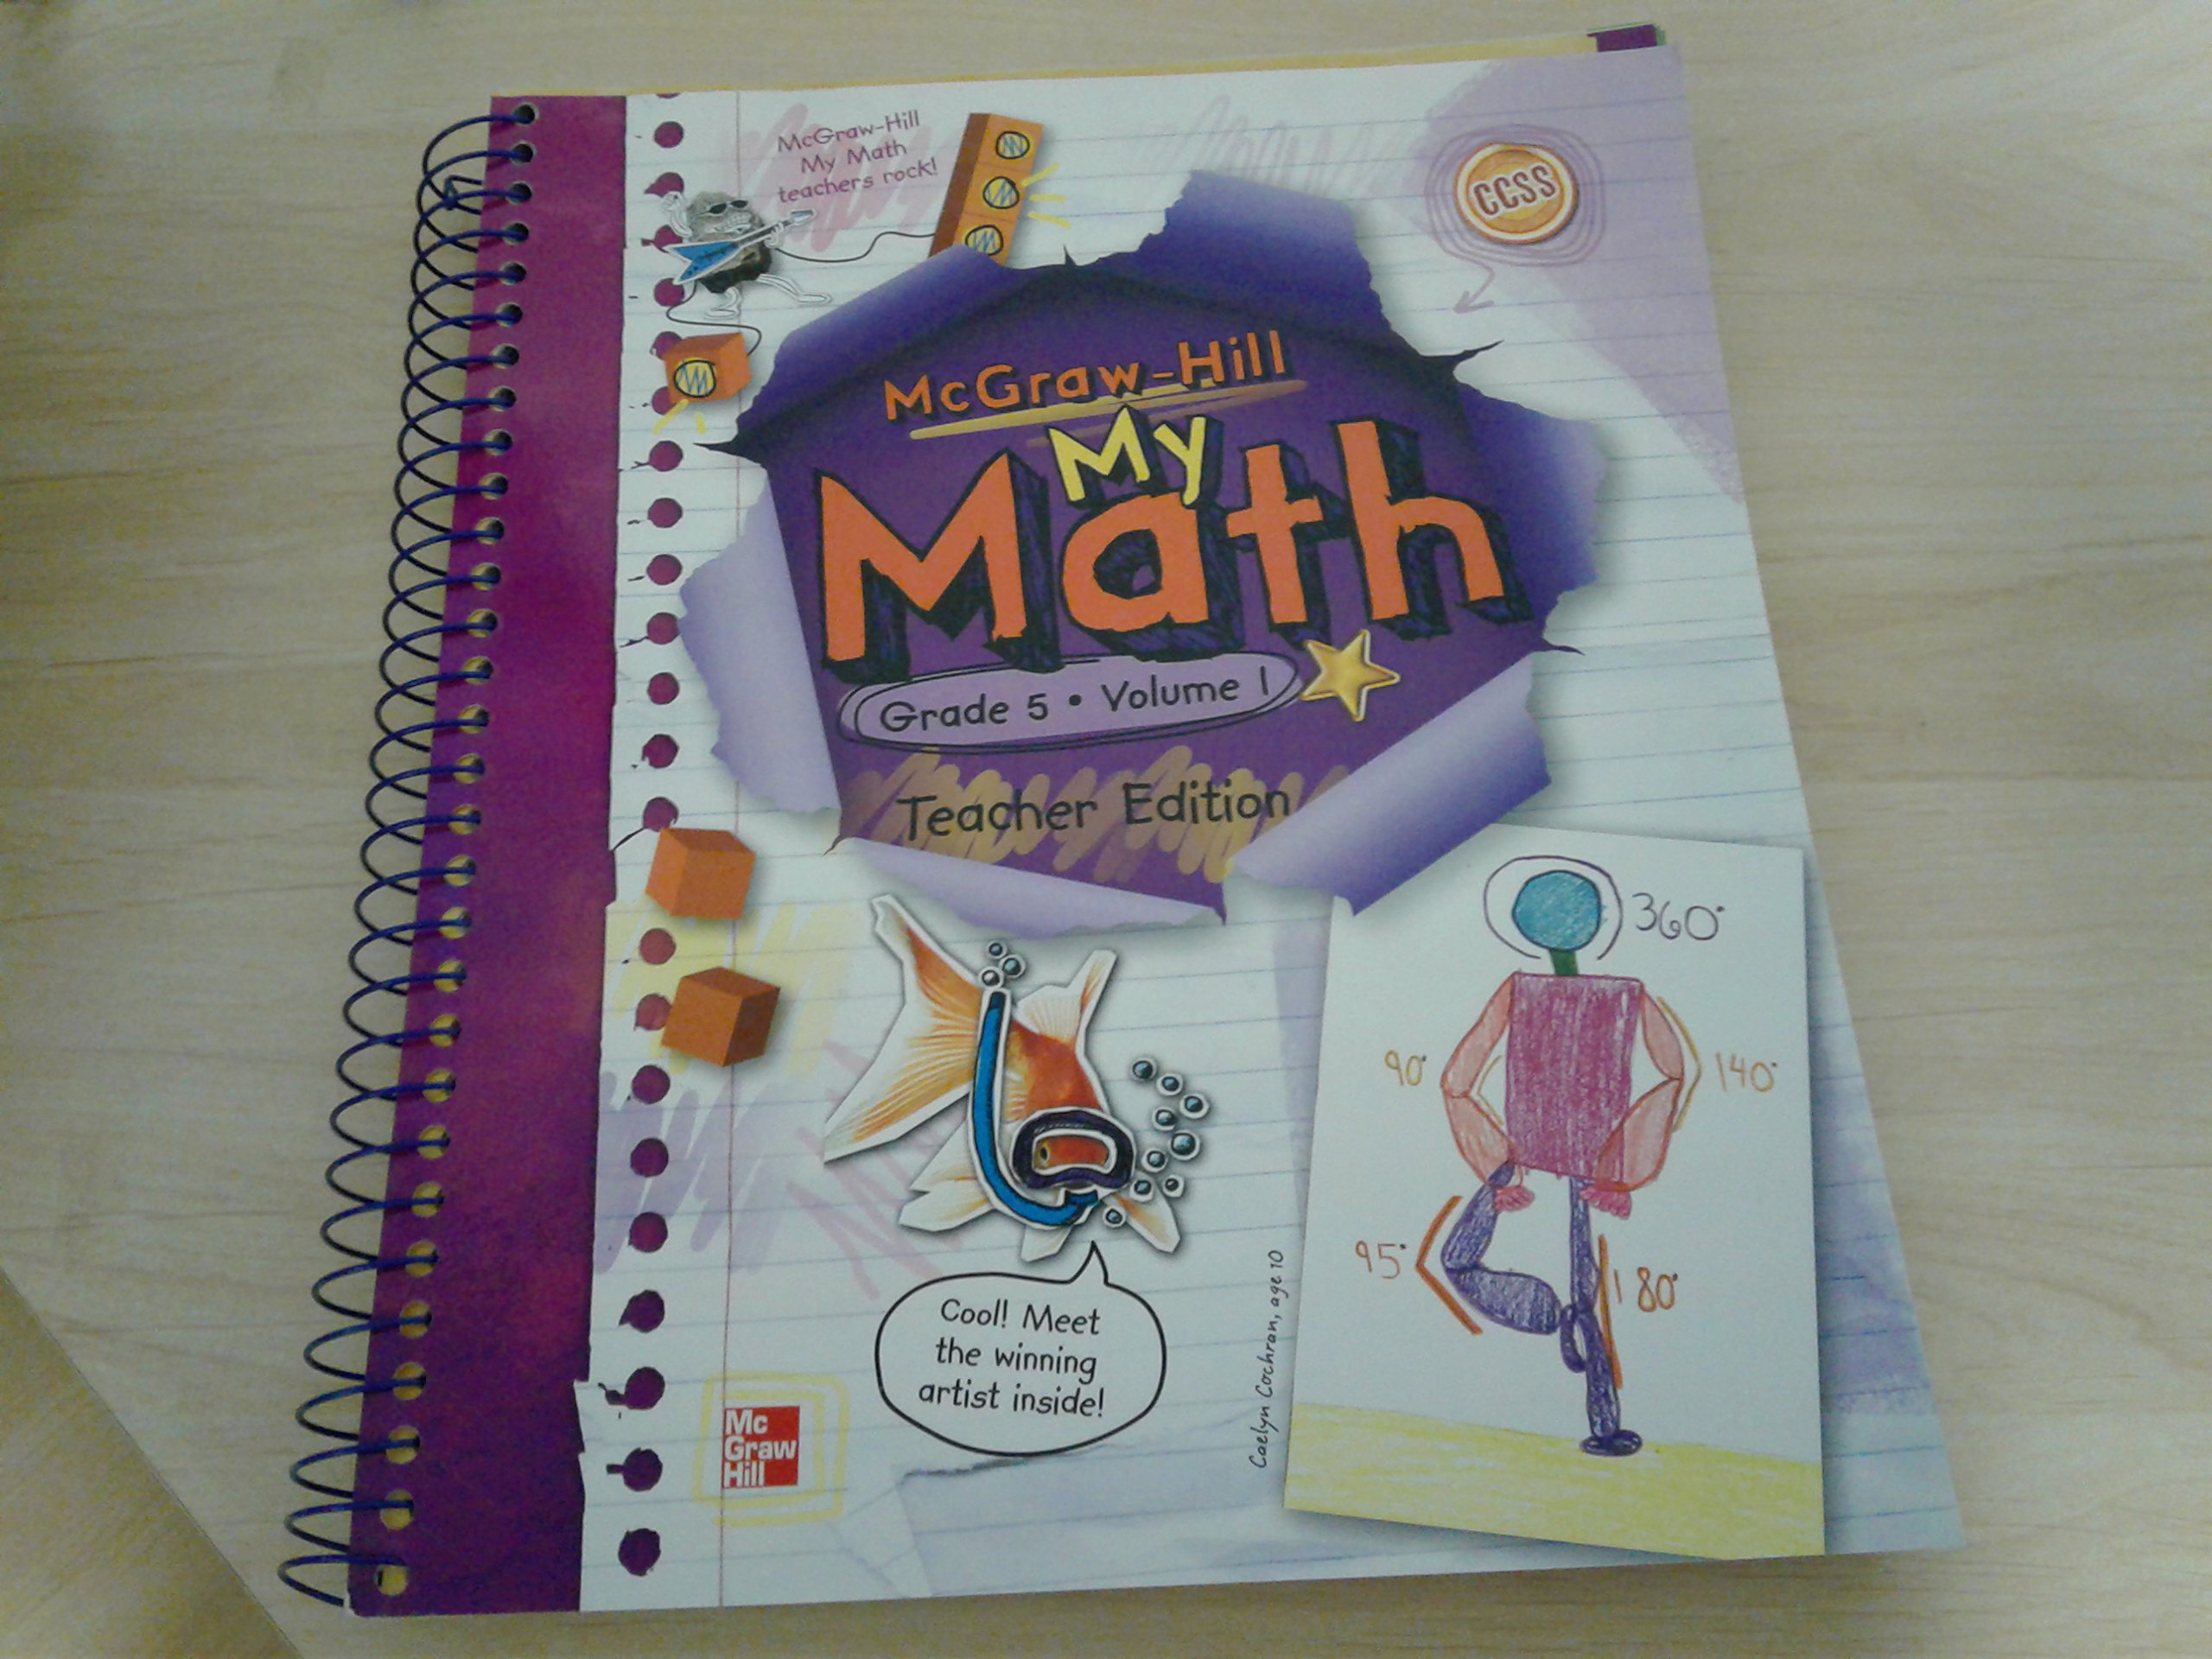 My Math, Vol. 1, Grade 5, Teacher Edition: carter: 9780021162079 ...